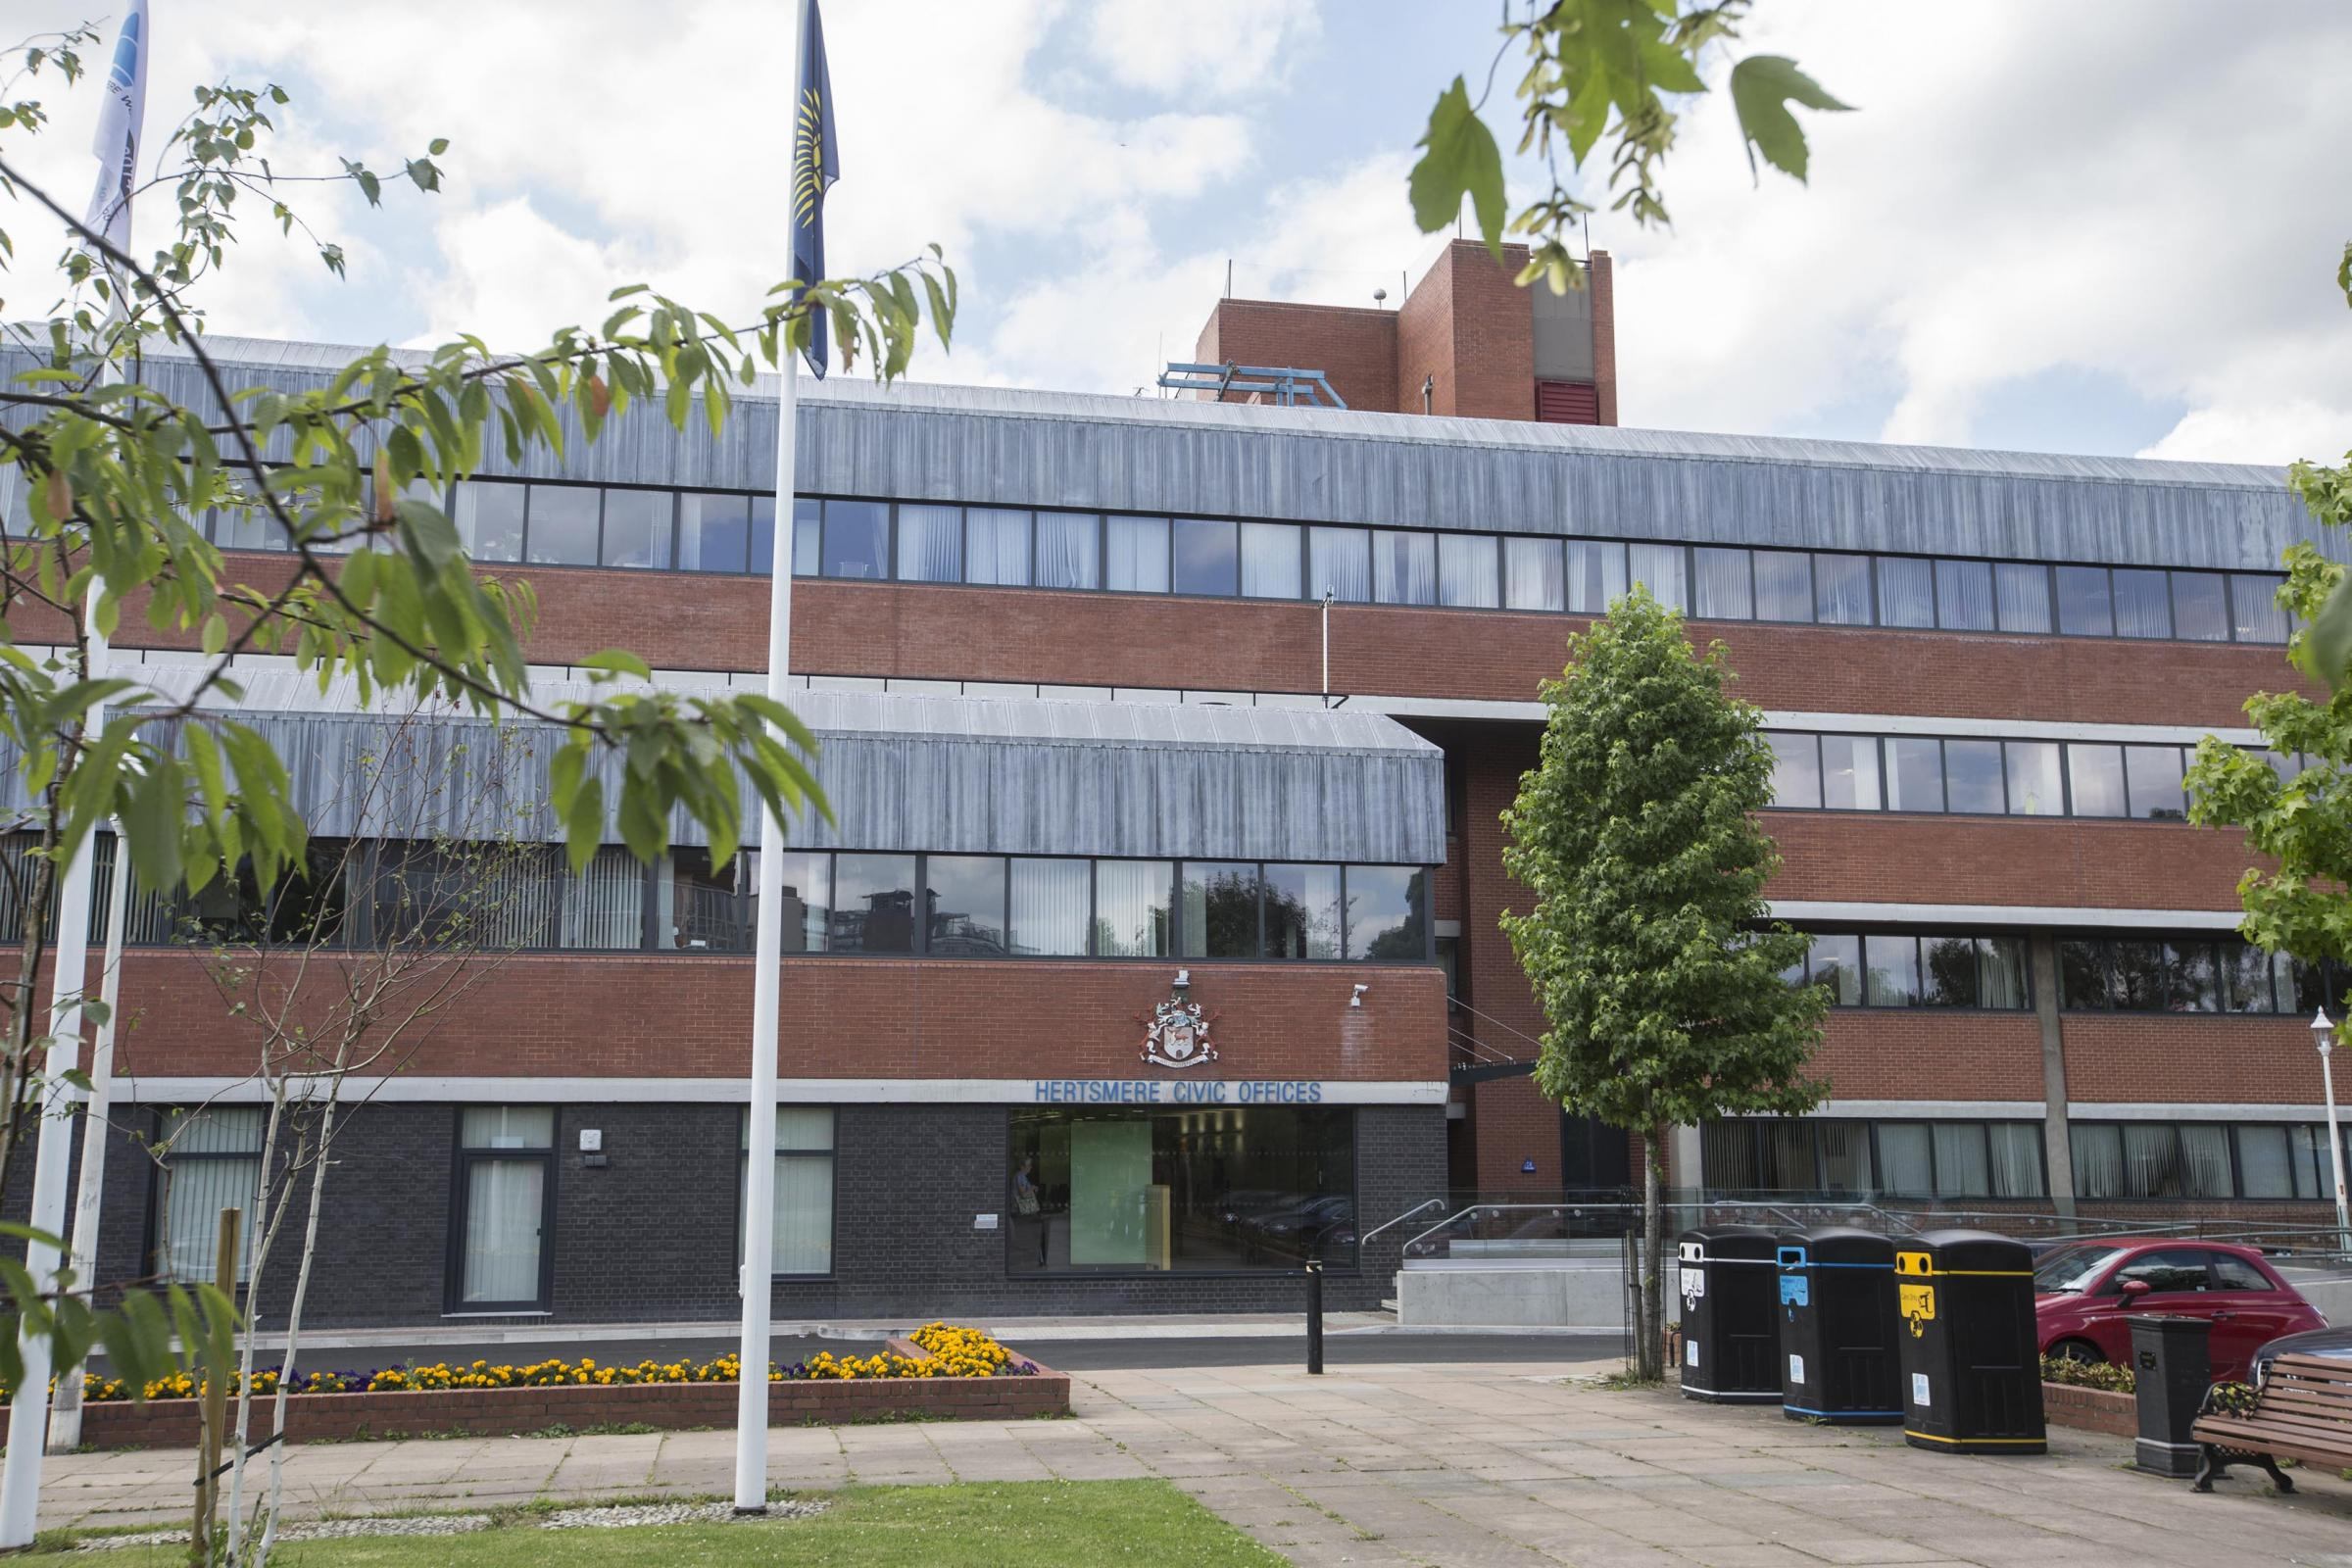 Hertsmere Borough Council offices